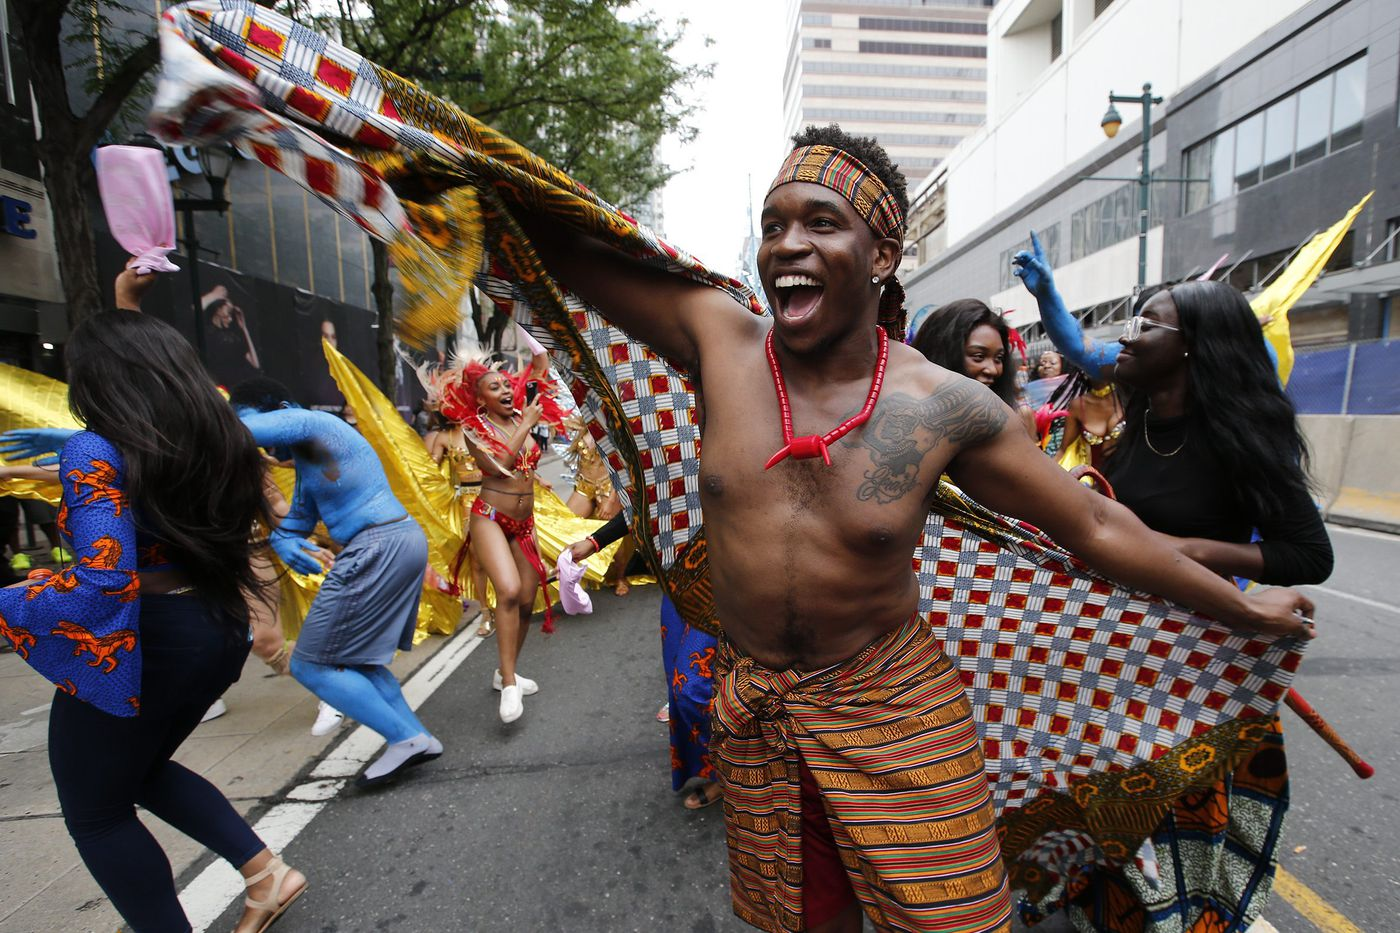 'We finally have our own holiday.' Slavery's end celebrated with Juneteenth Day festivities